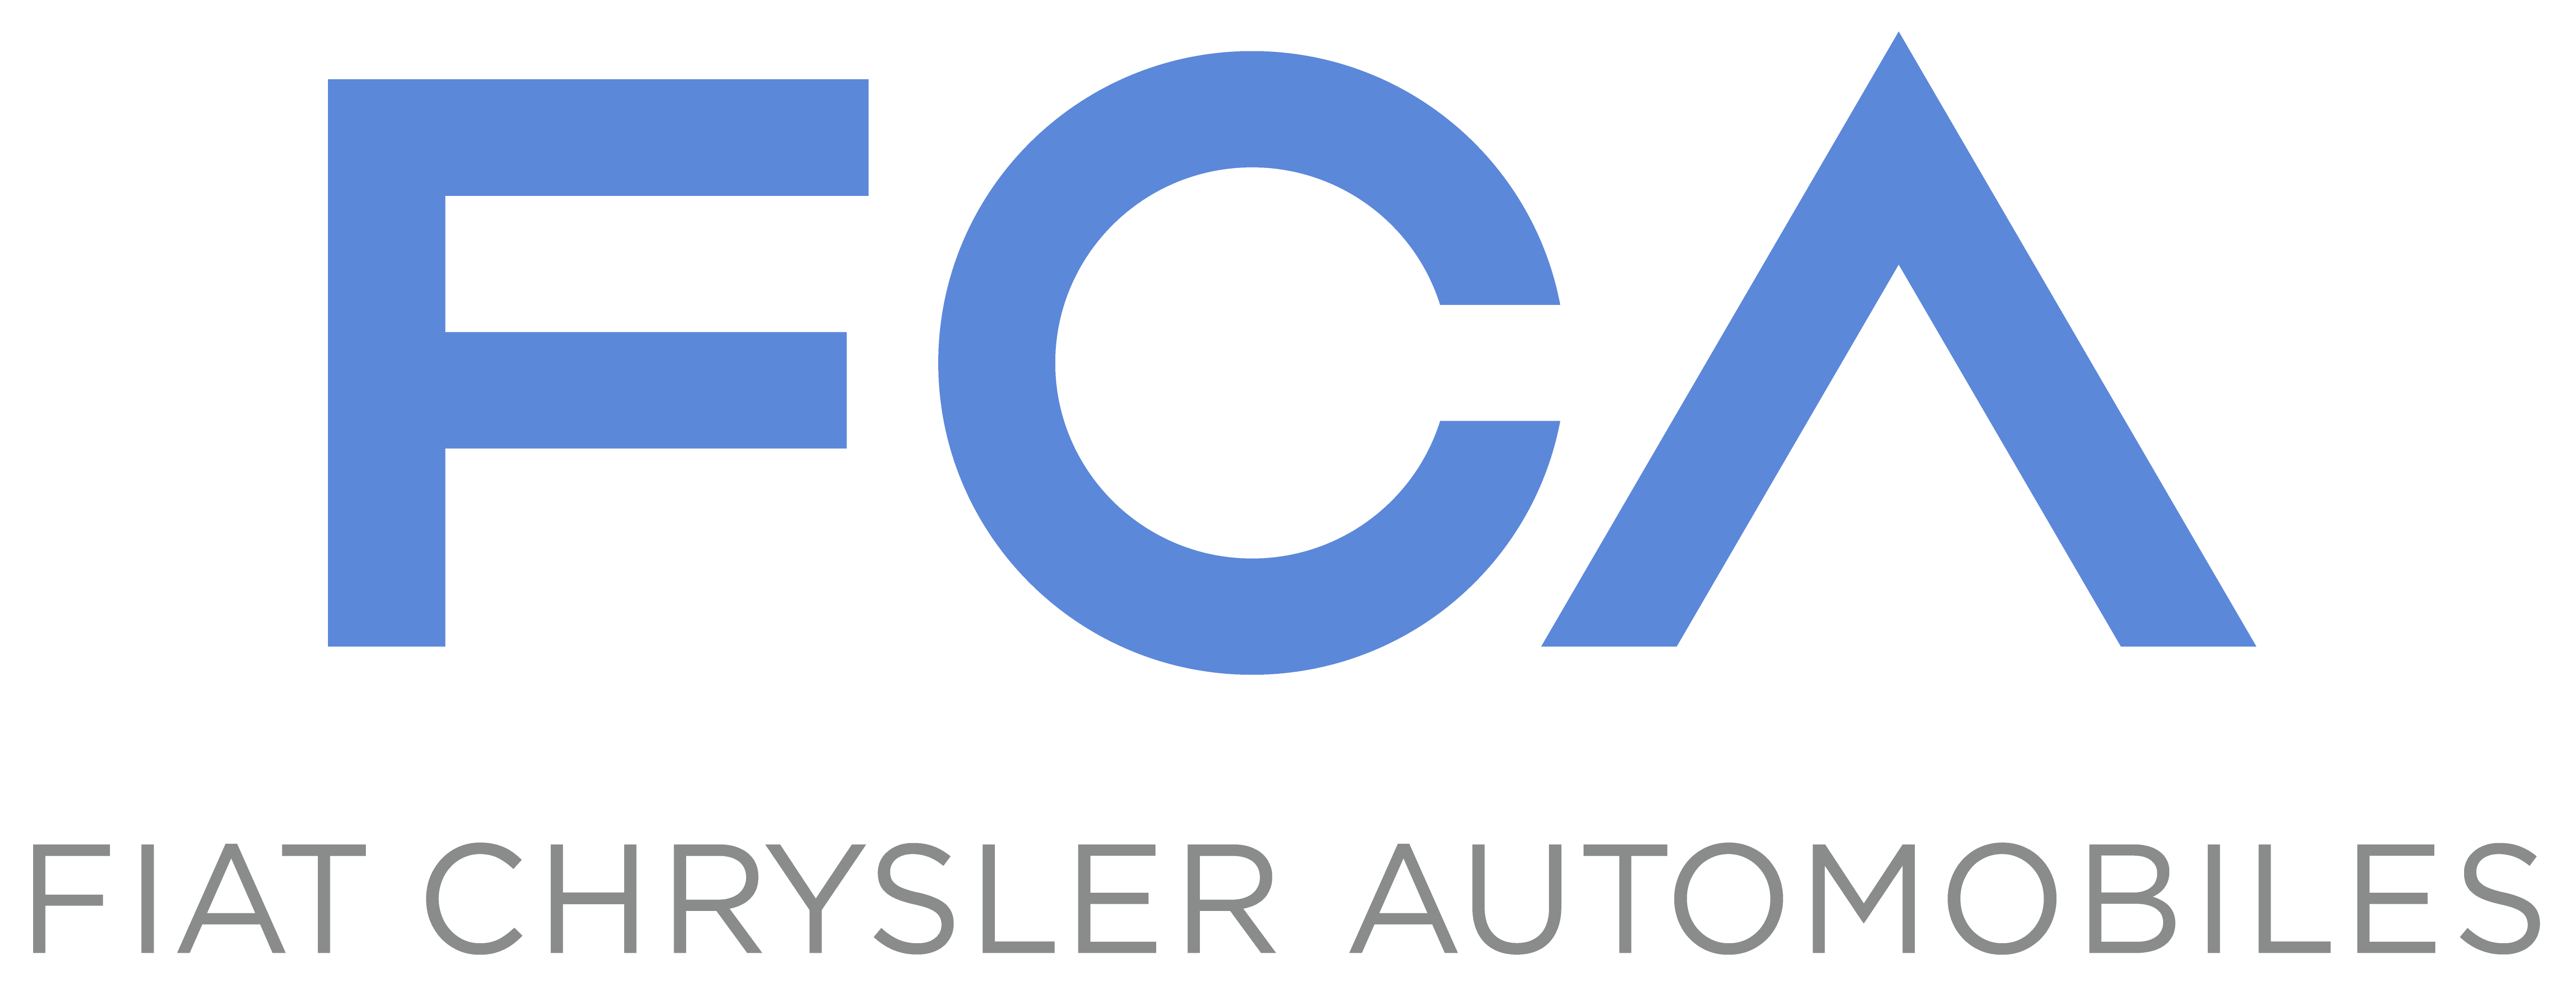 File:Logo Fiat Chrysler Automobiles.png.